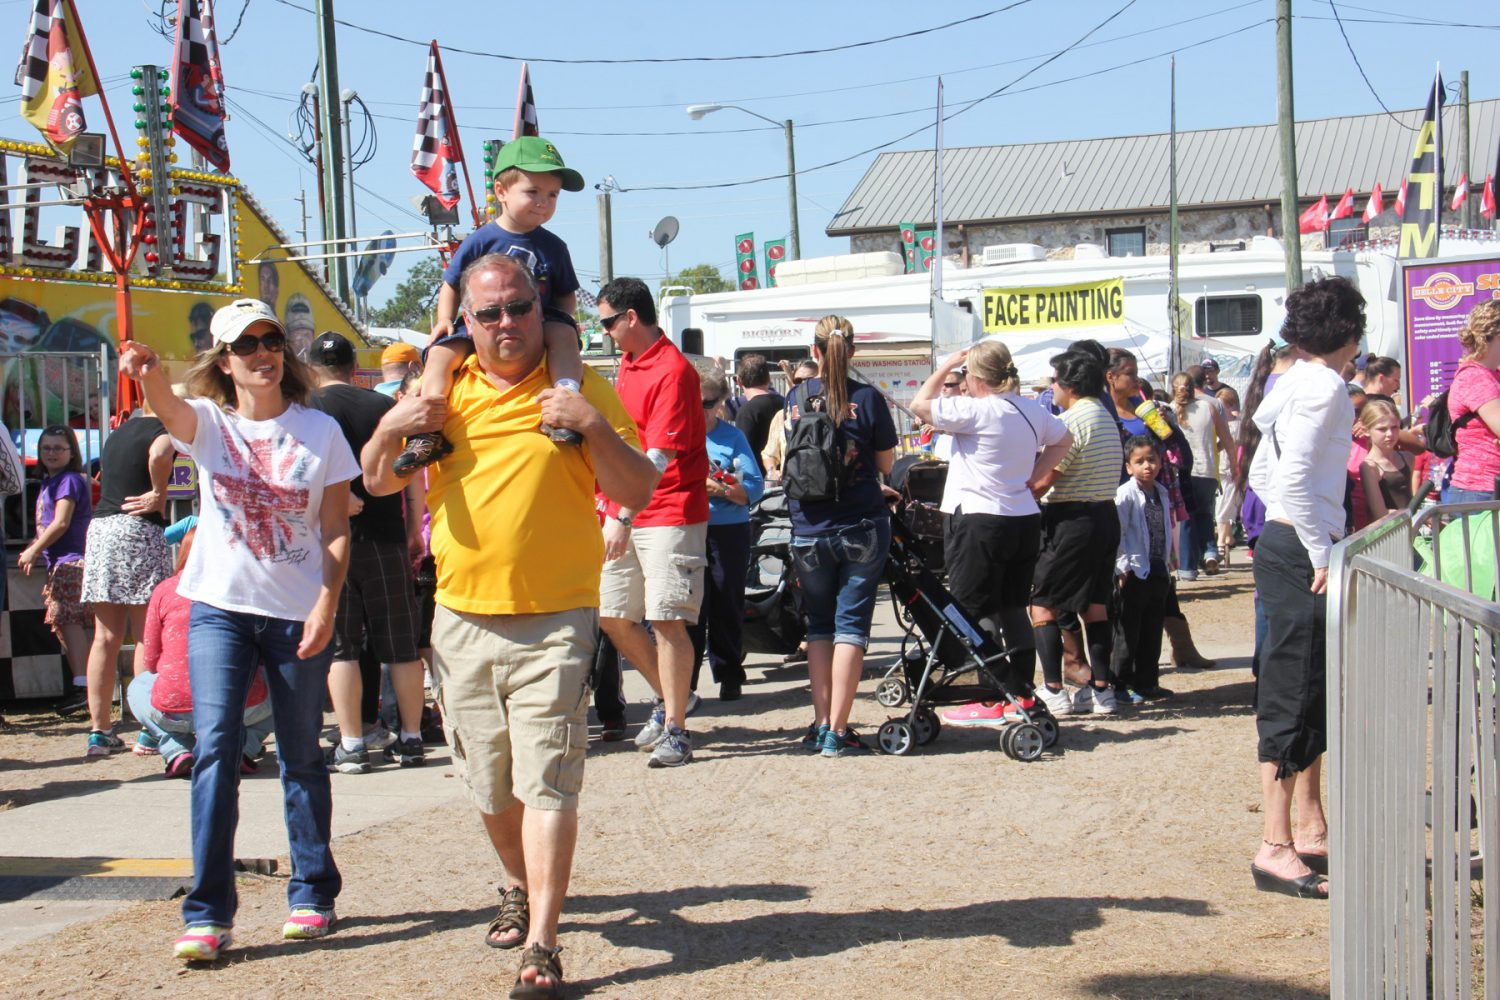 A crowd of people walk through the Florida Strawberry Festival on Sunday afternoon, Mar. 9. 2014